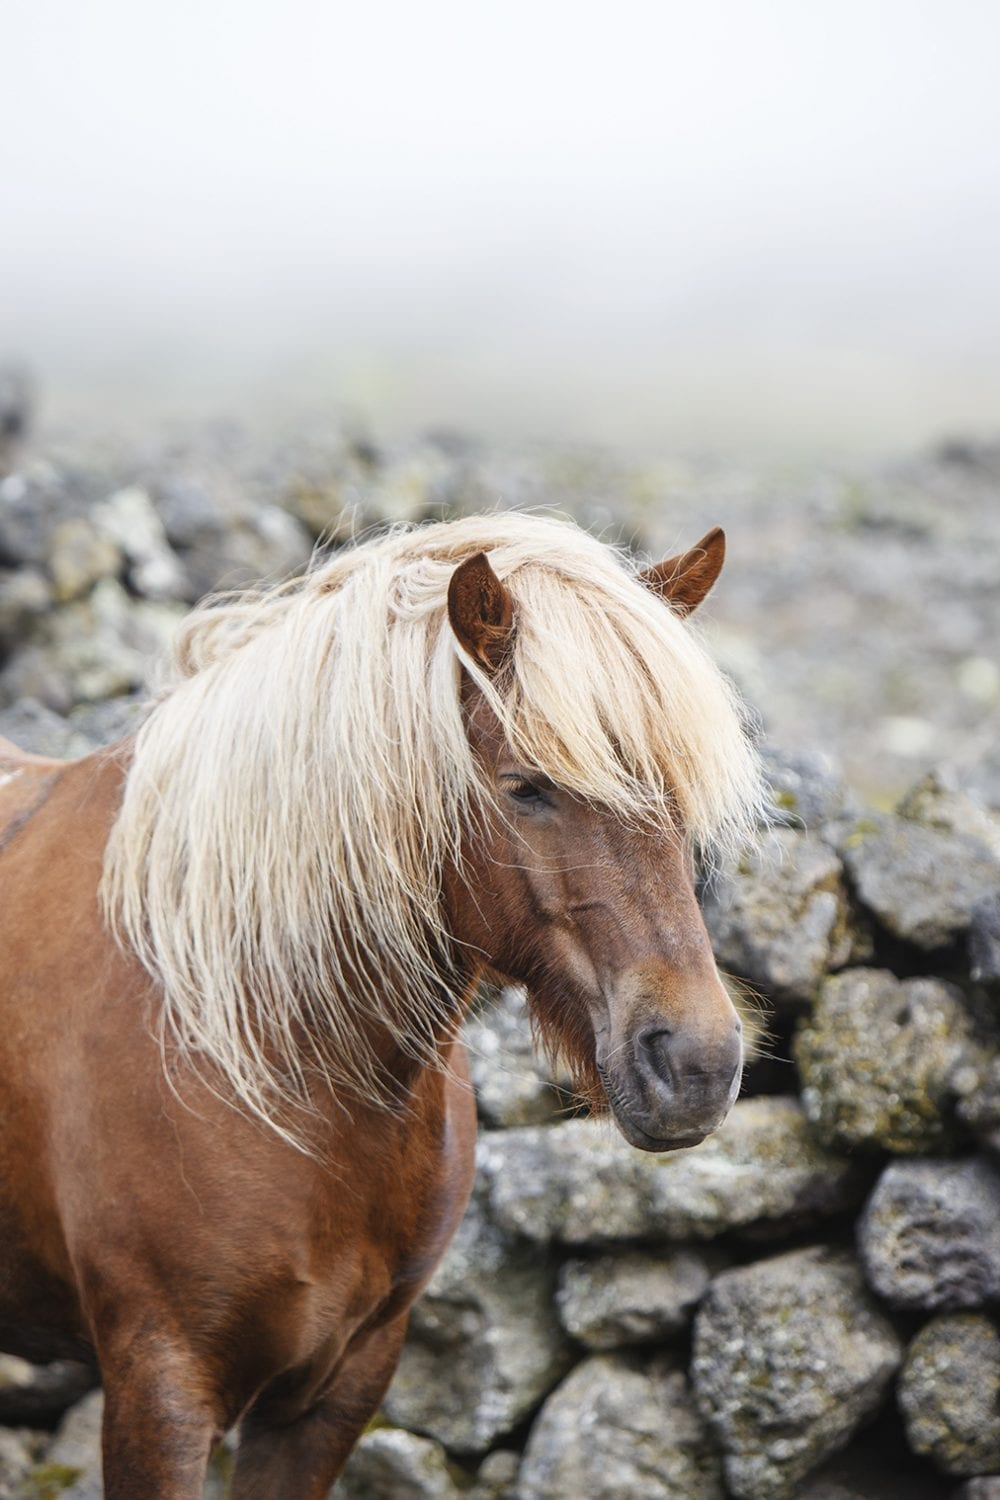 A beautiful horse stands by stacked rocks in foggy weather